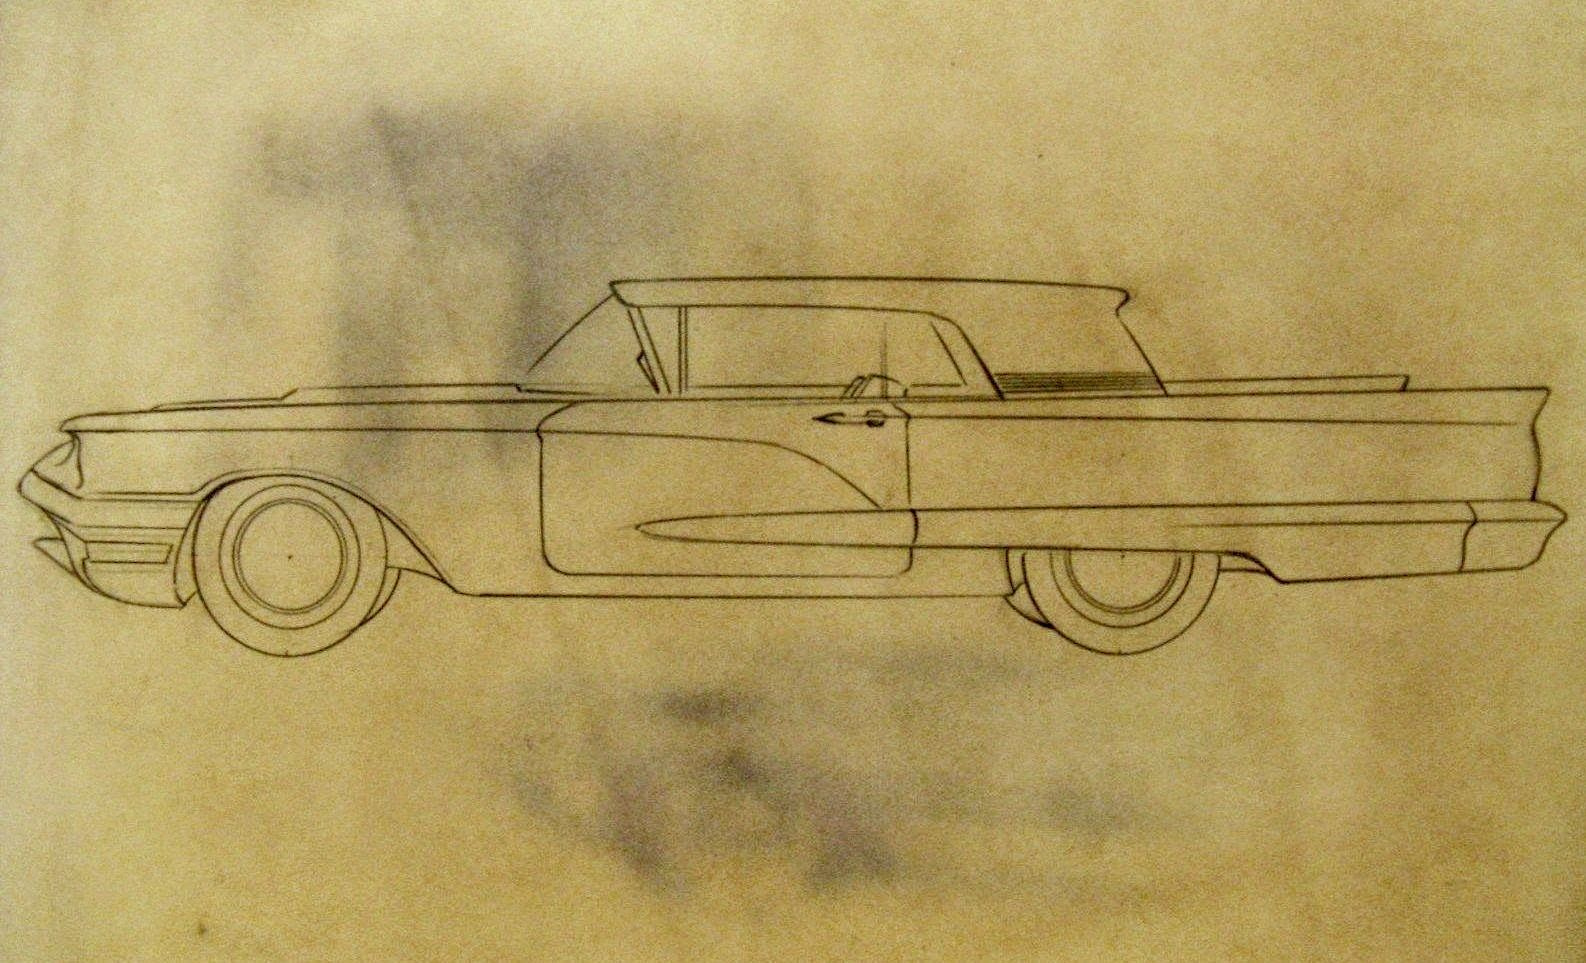 Deadly Curves 1959 1960 Ford Thunderbird Concept Drawings Very Rare And Very Cool Ford Thunderbird Vintage Drawing Thunderbird